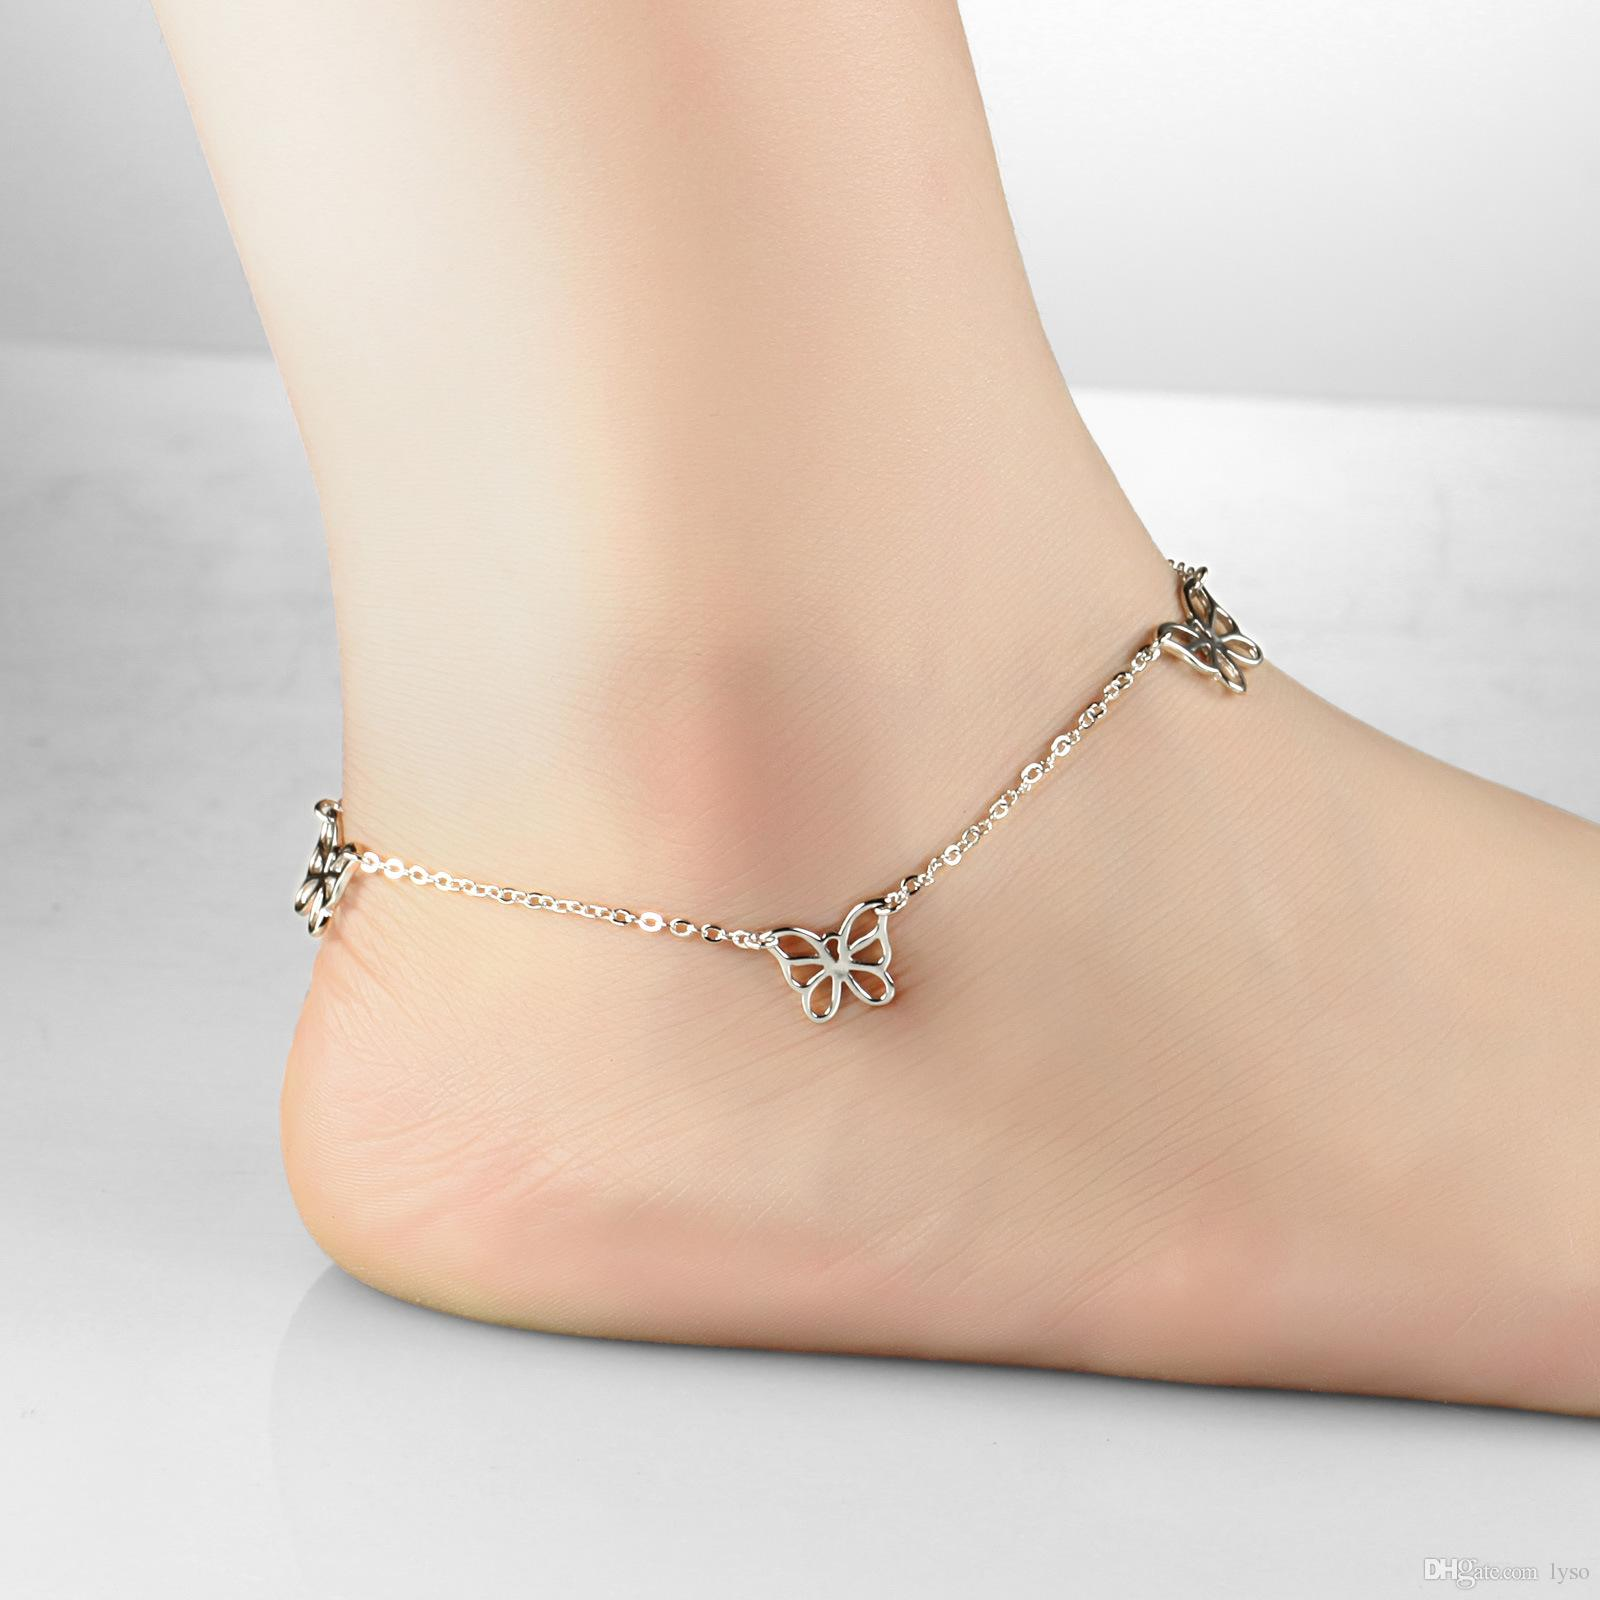 ring barefoot and with crystal anklets rhinestone jewelry rings chain anklet foot beach sandal wedding toe